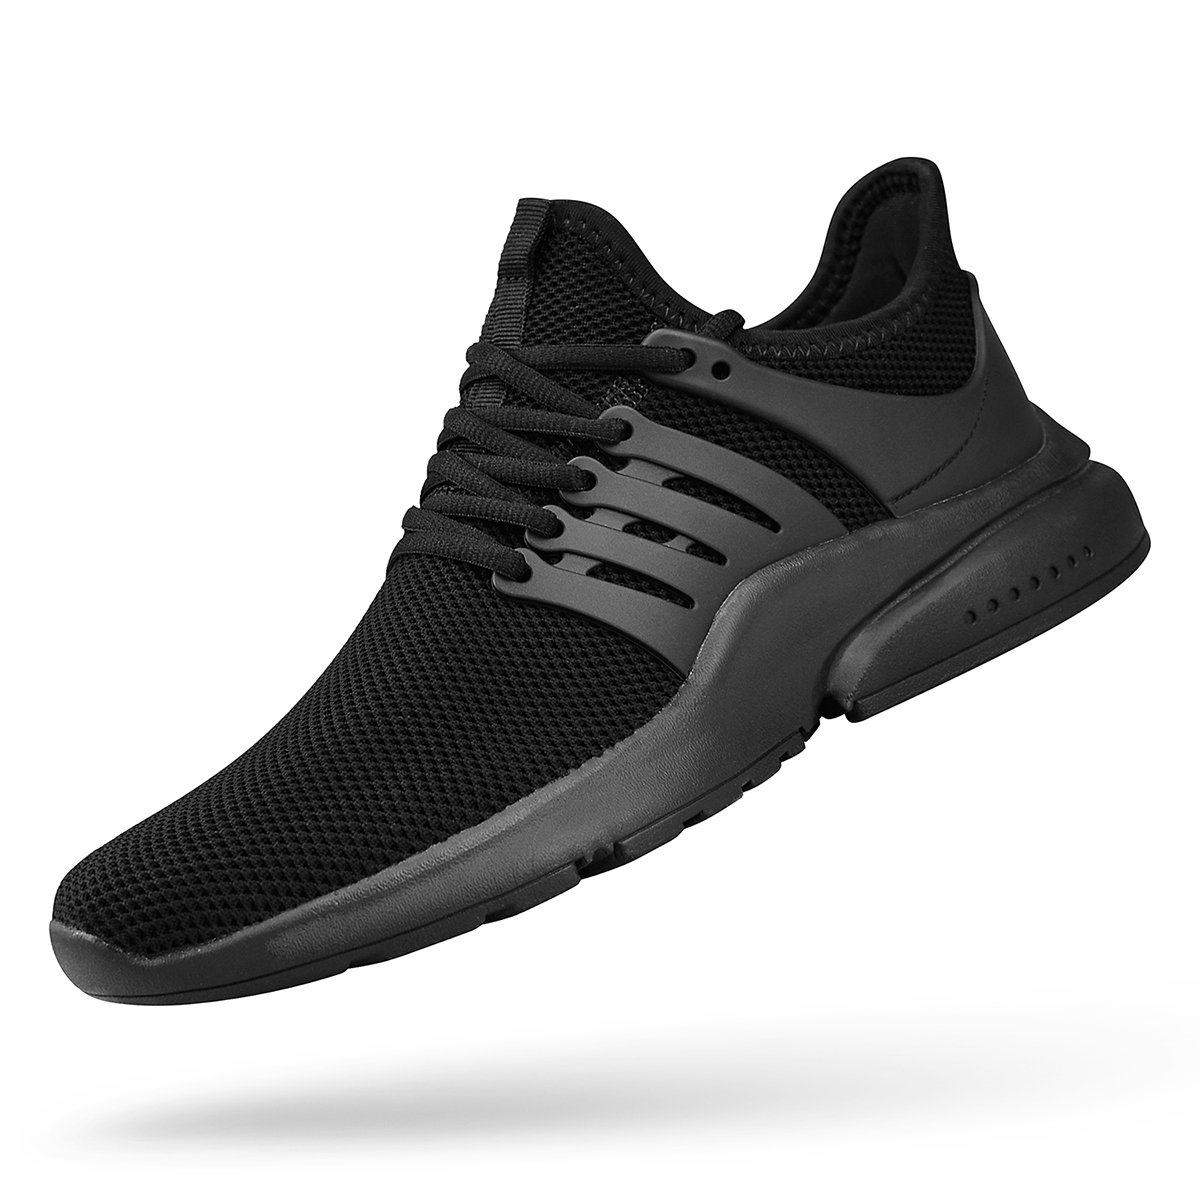 2019 New Arrival Men Running Shoes Professional Male Sport Shoes Men Women Sneakers Cushioning Breathable Students Shoes High Resilience Underwear & Sleepwears